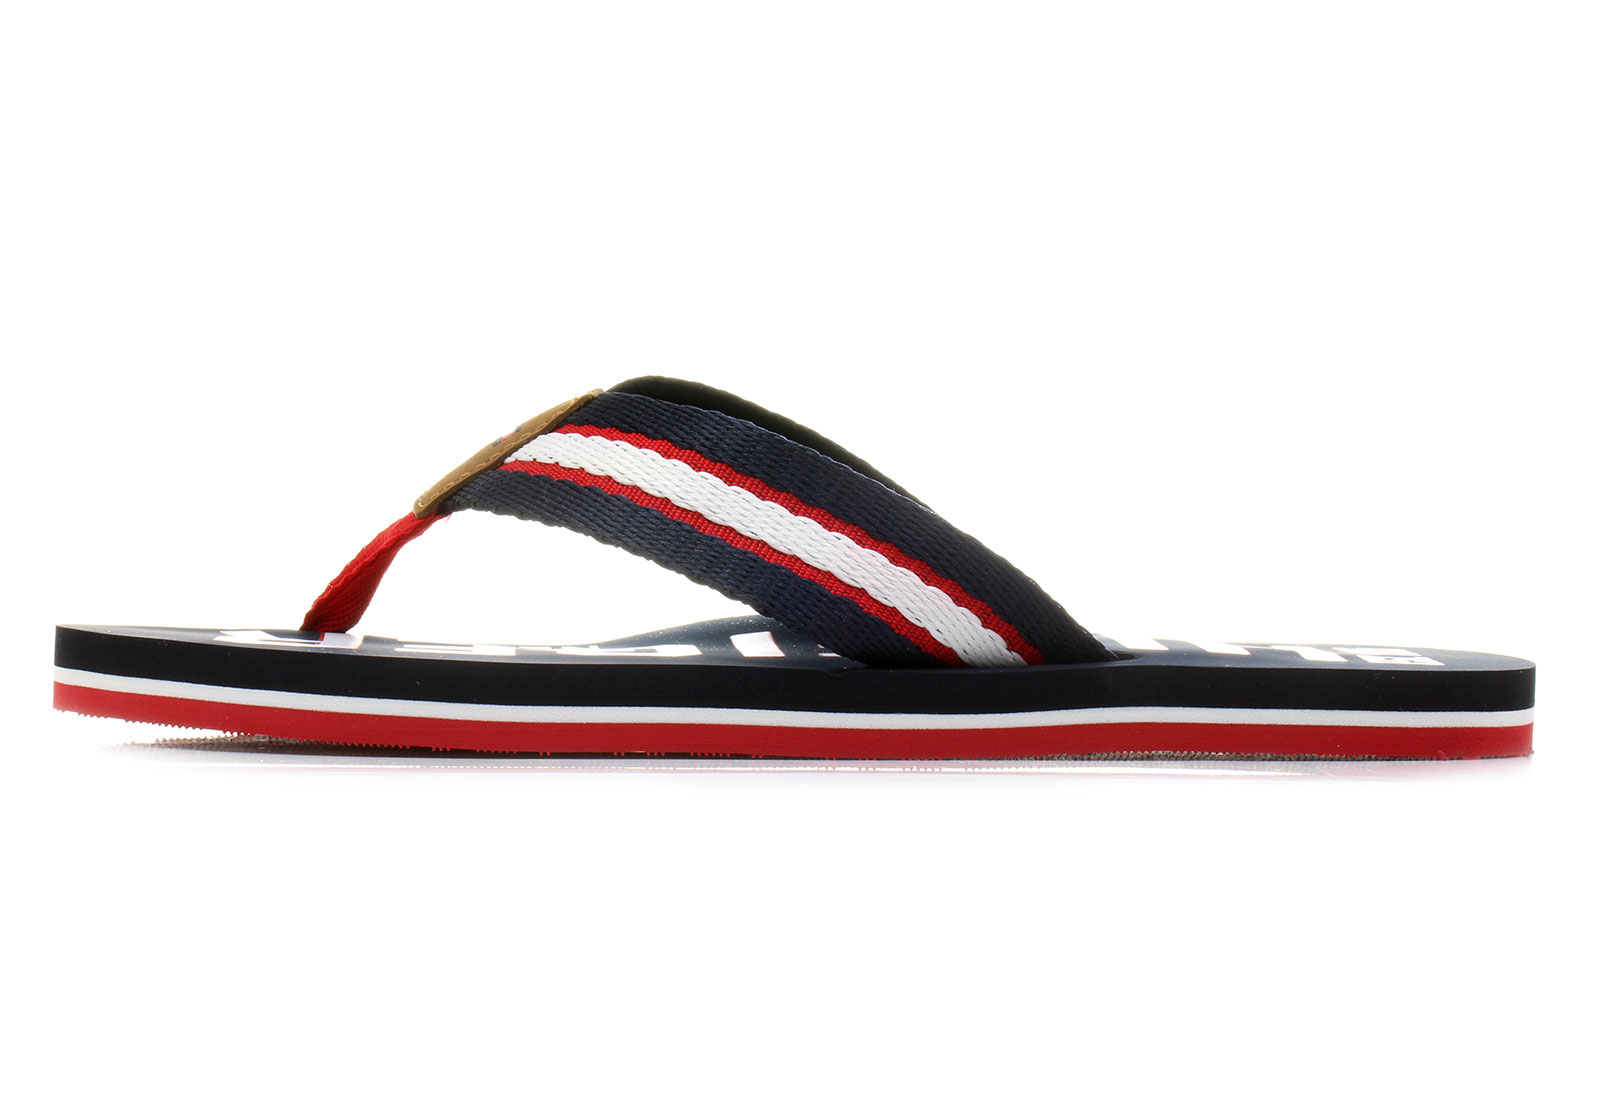 62caa7847b0f Tommy Hilfiger Slippers - Banks 11d - 16S-0929-403 - Online shop for ...